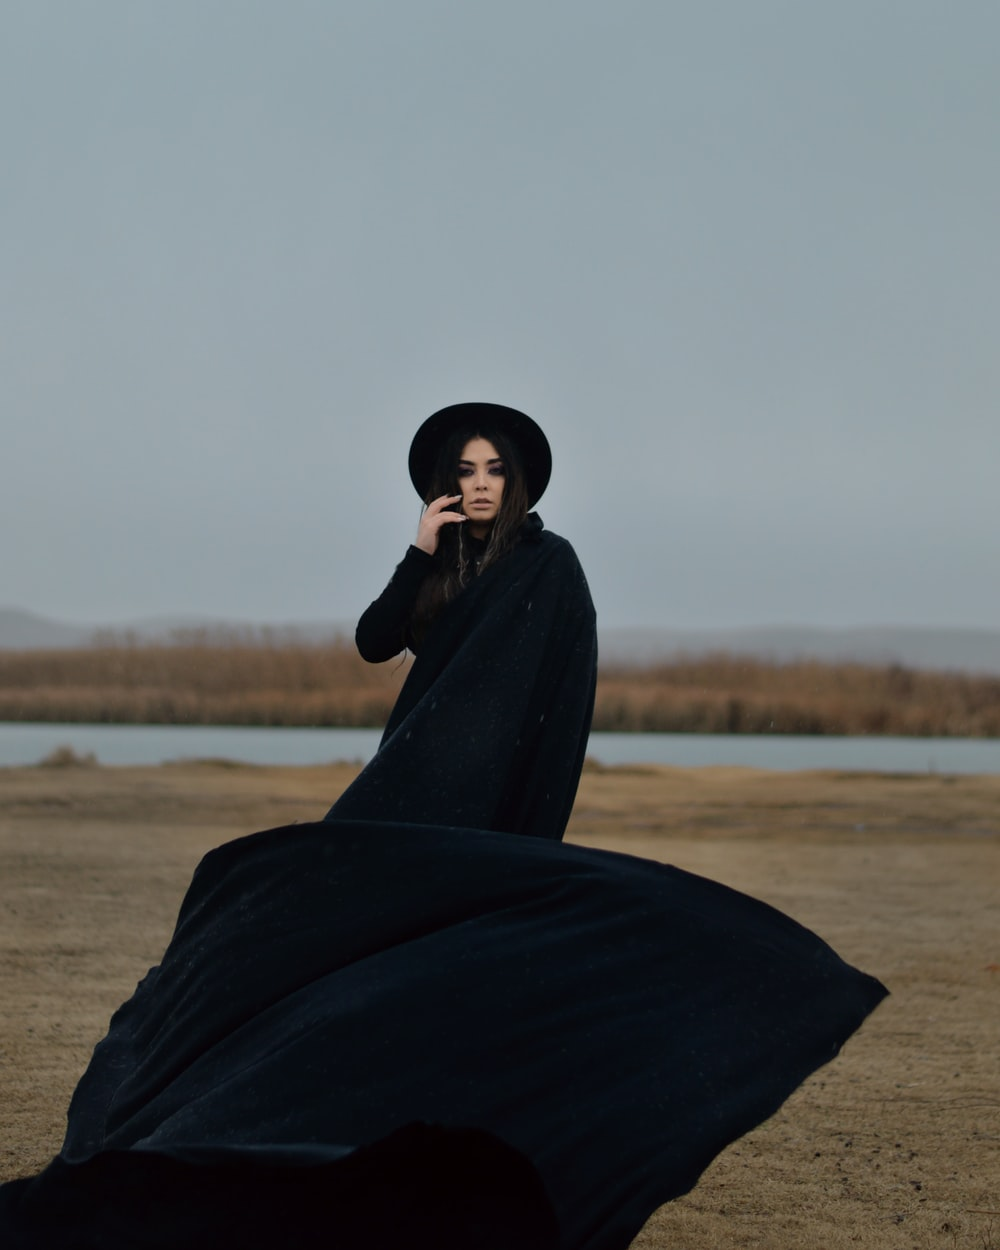 woman in black robe standing on brown field during daytime